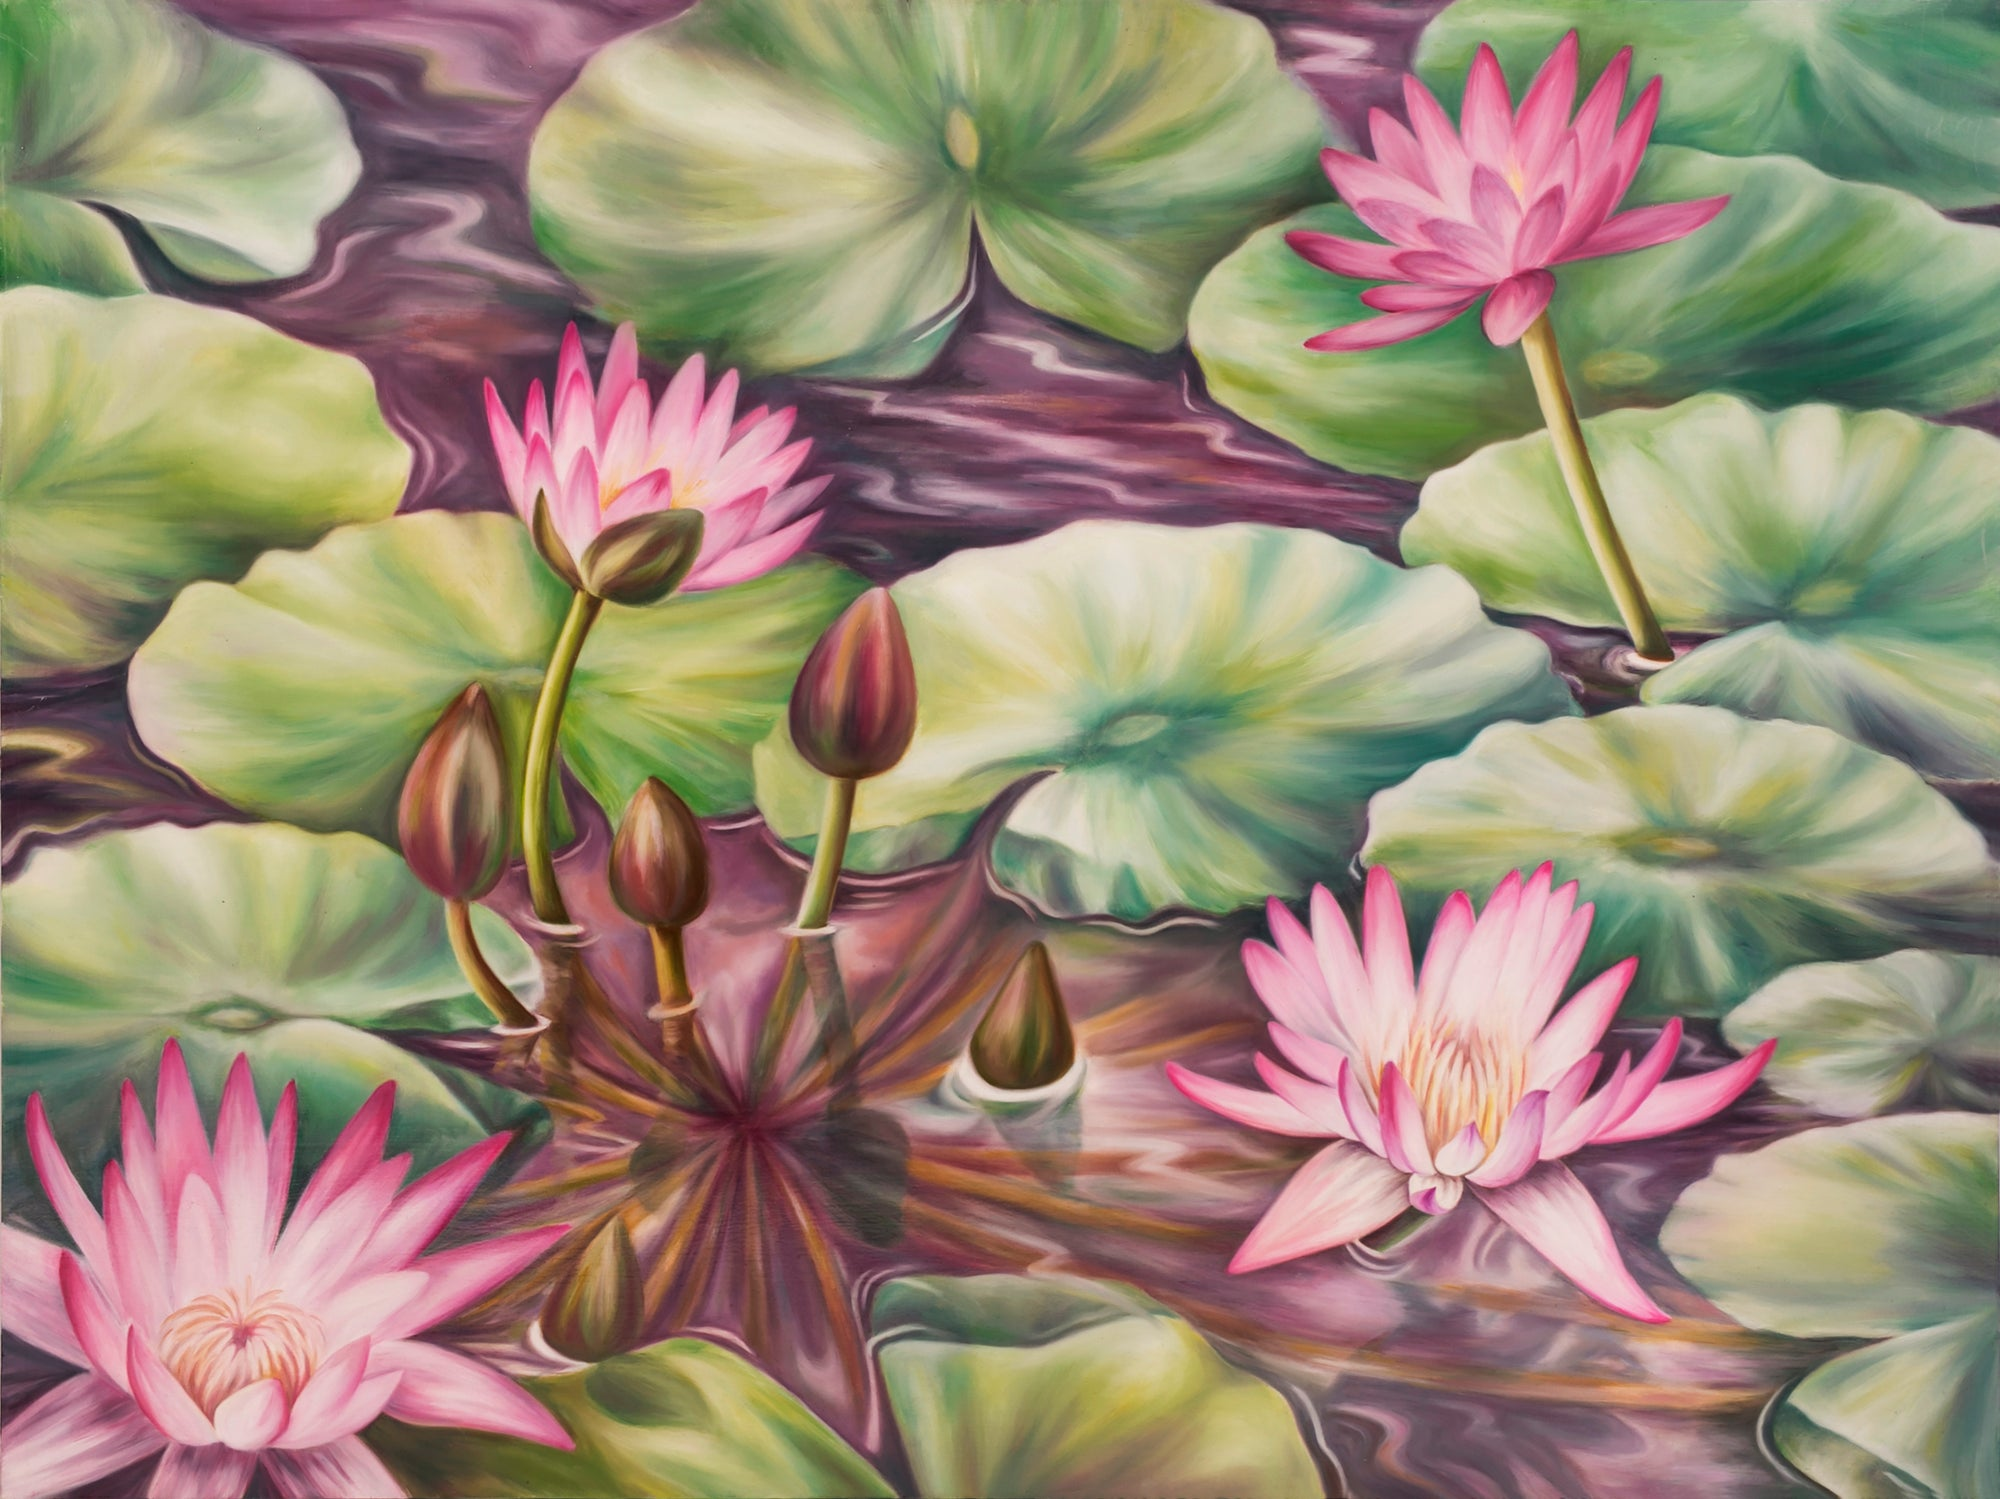 Serenity - Water Lily Pond Original Oil Painting - Fine Art